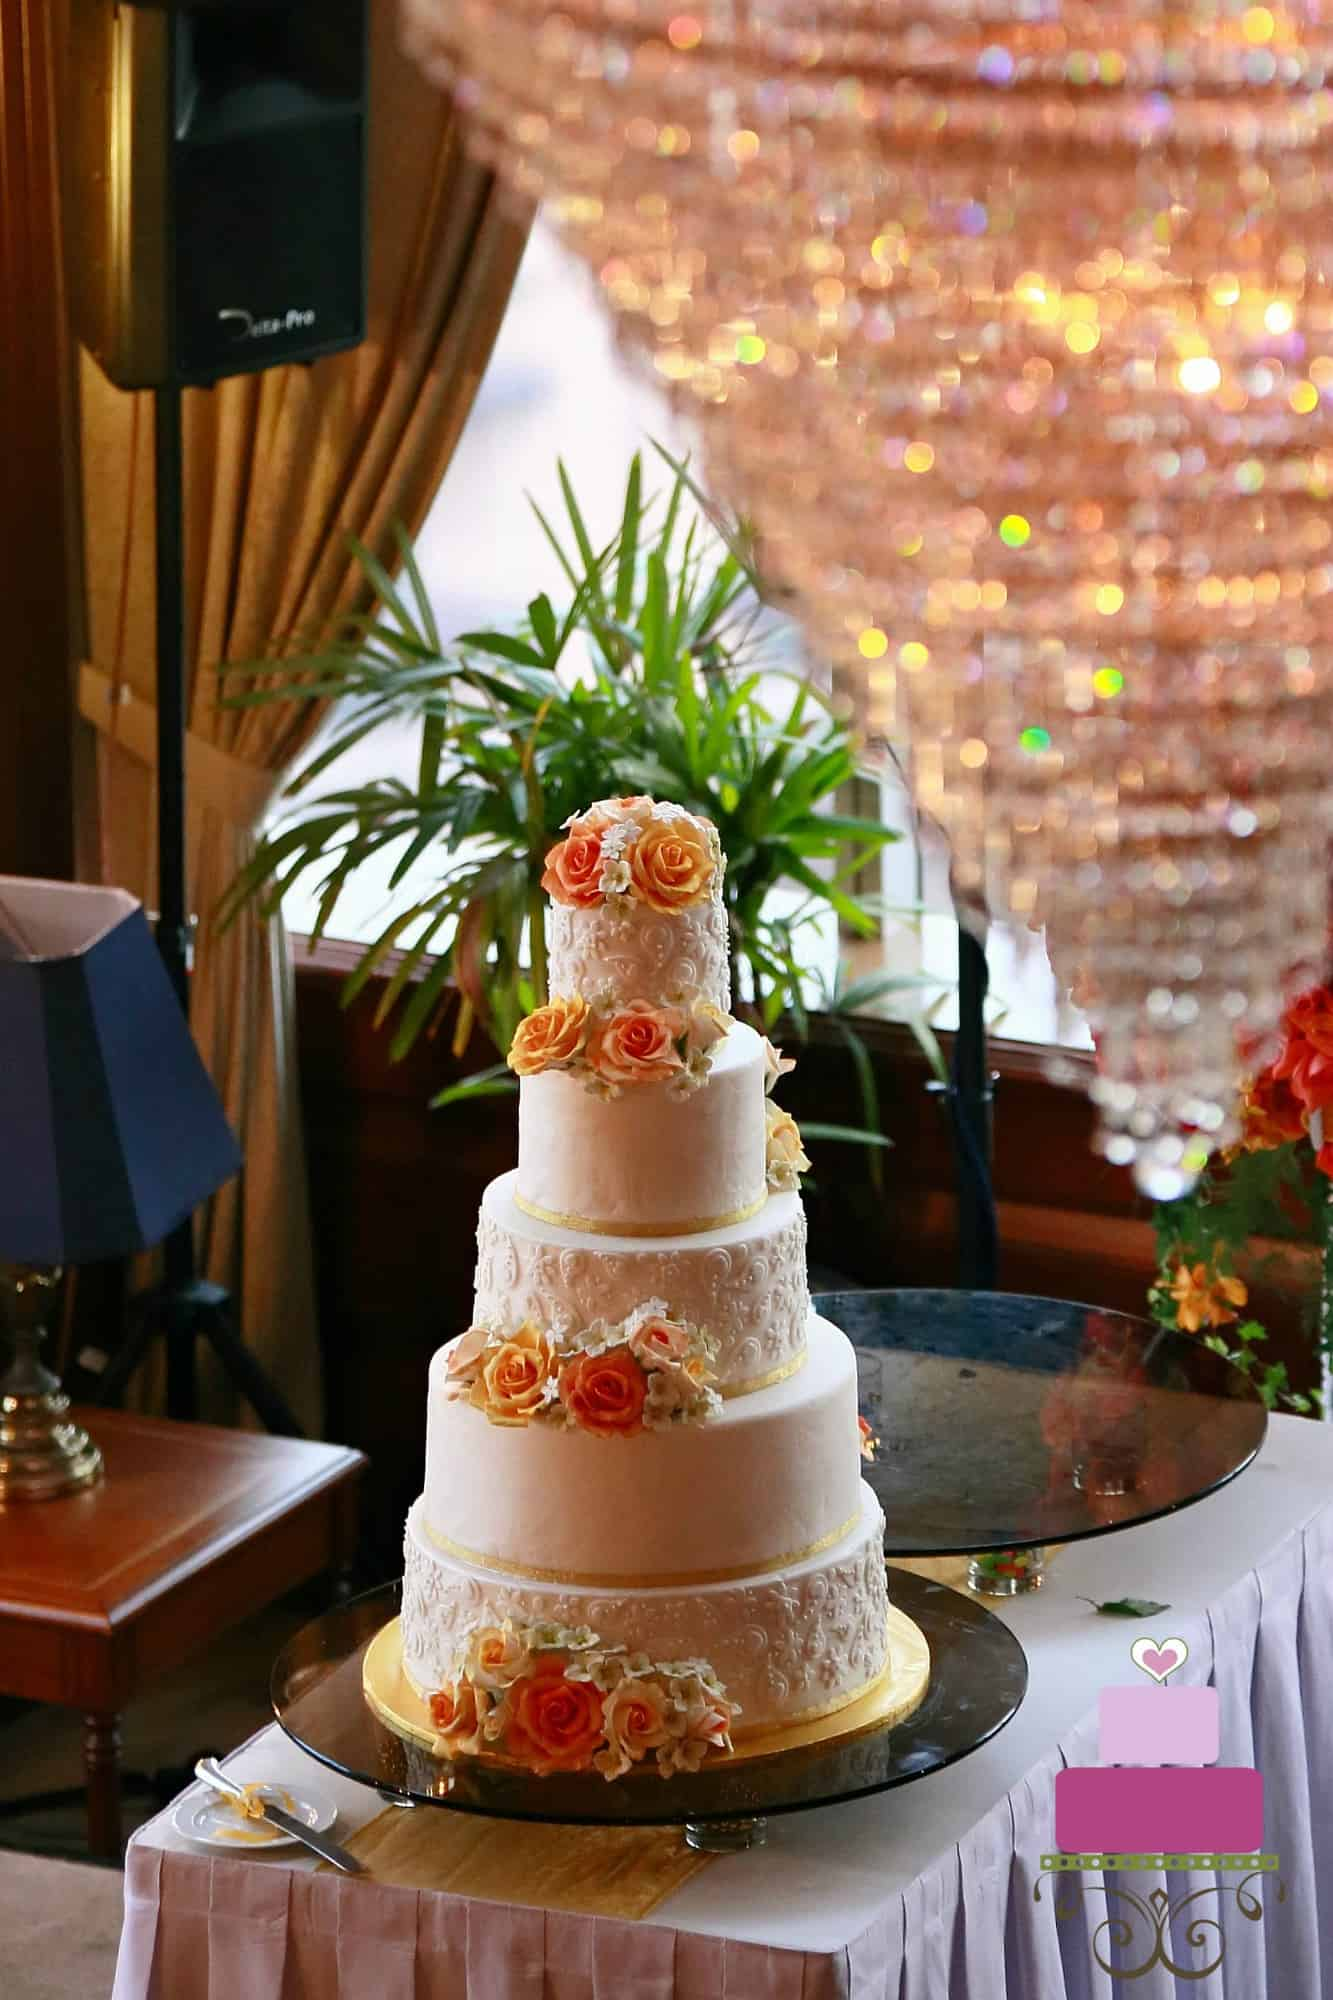 A 5 tier wedding cake decorated with orange and yellow roses and fondant lace